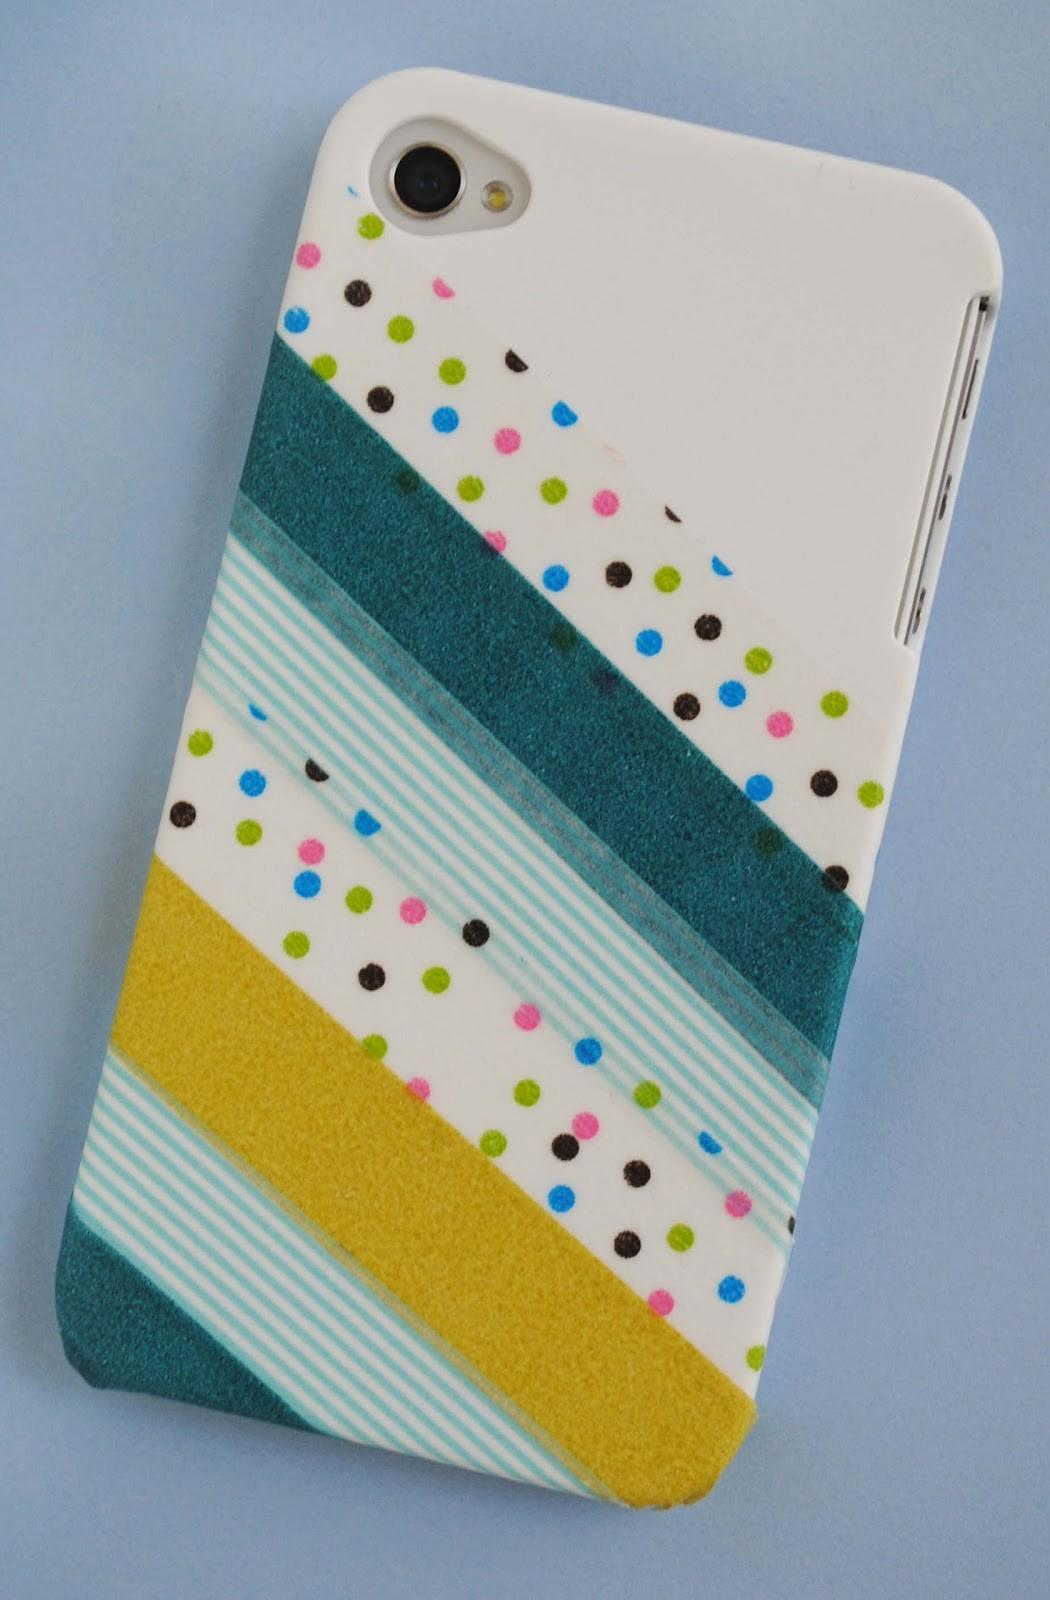 Zakka Life Craft Washi Tape Phone Cover